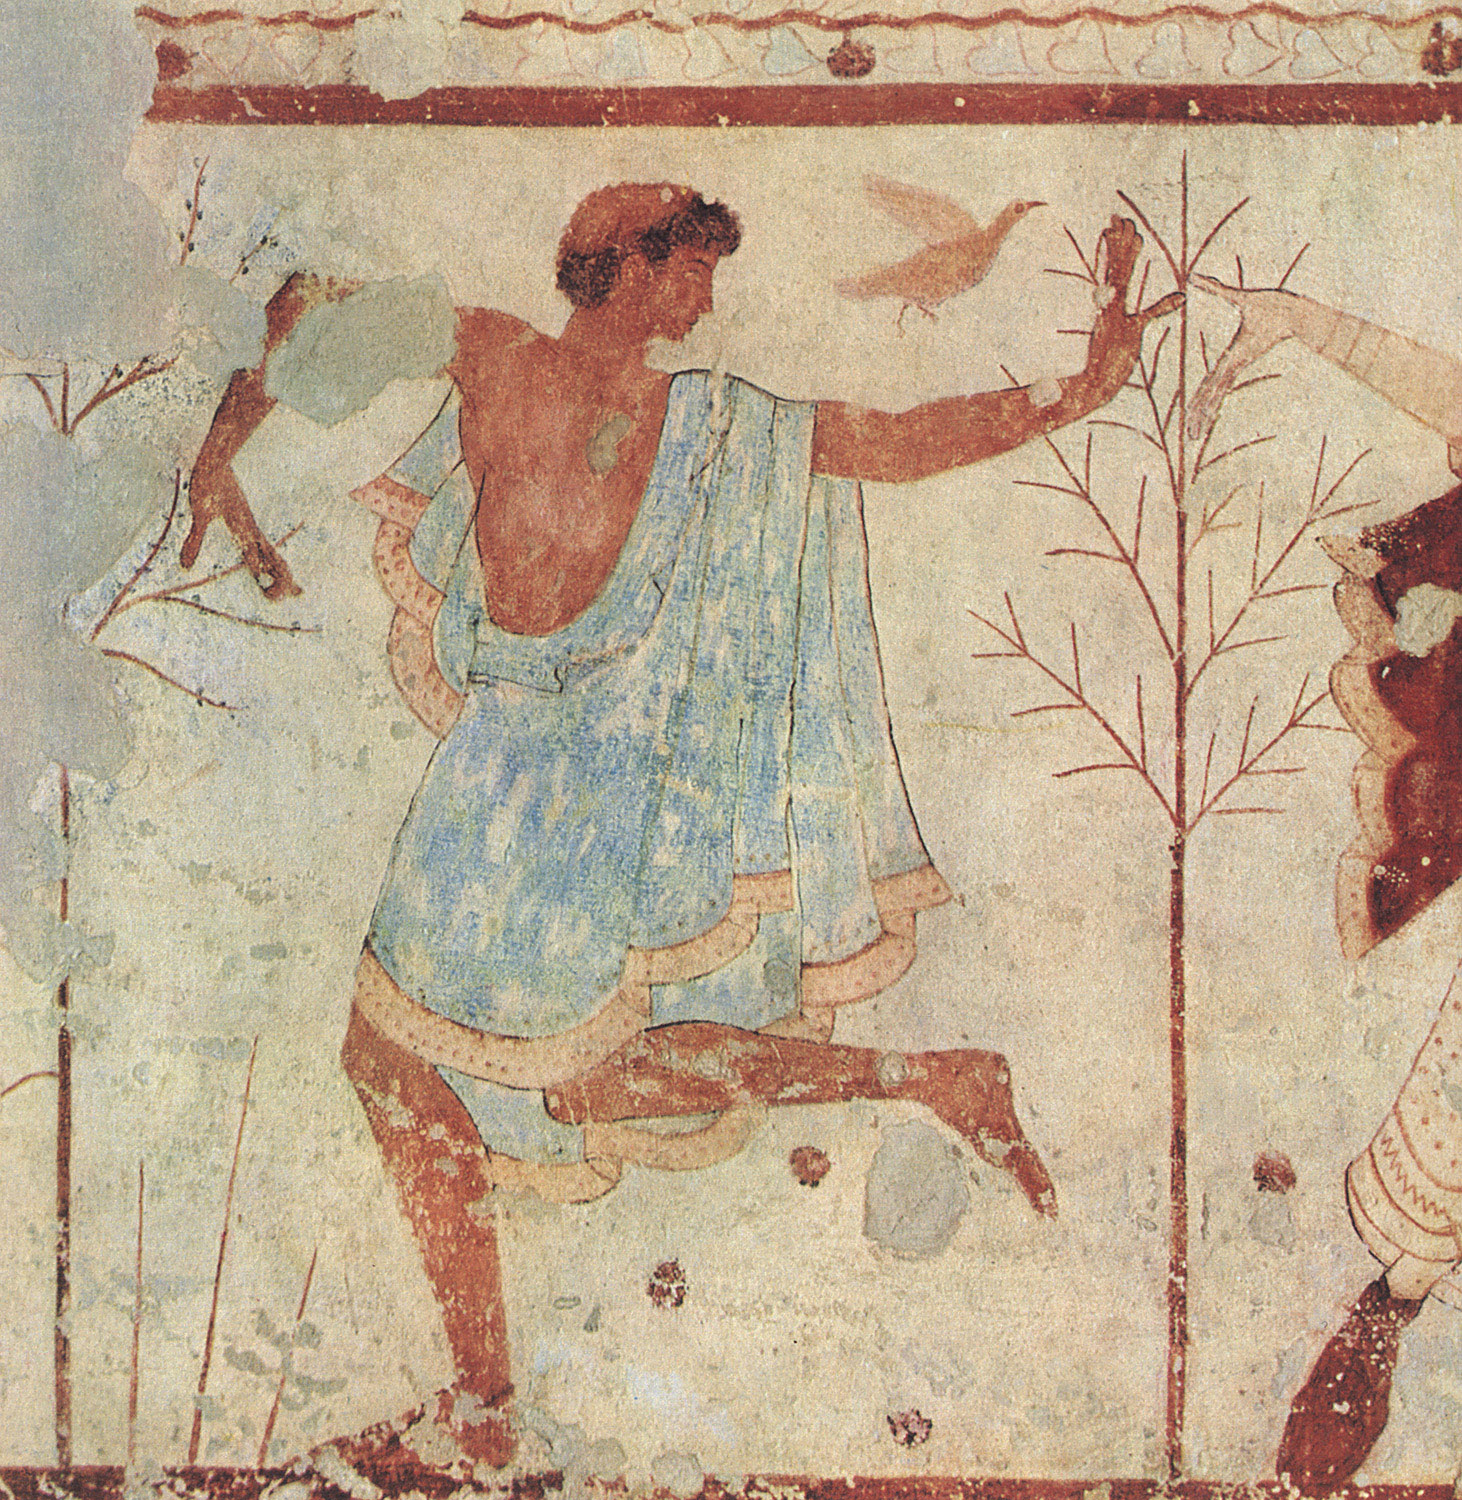 Dancer. 5th century BCE. Tarquinia, Tomb of the Triclinium